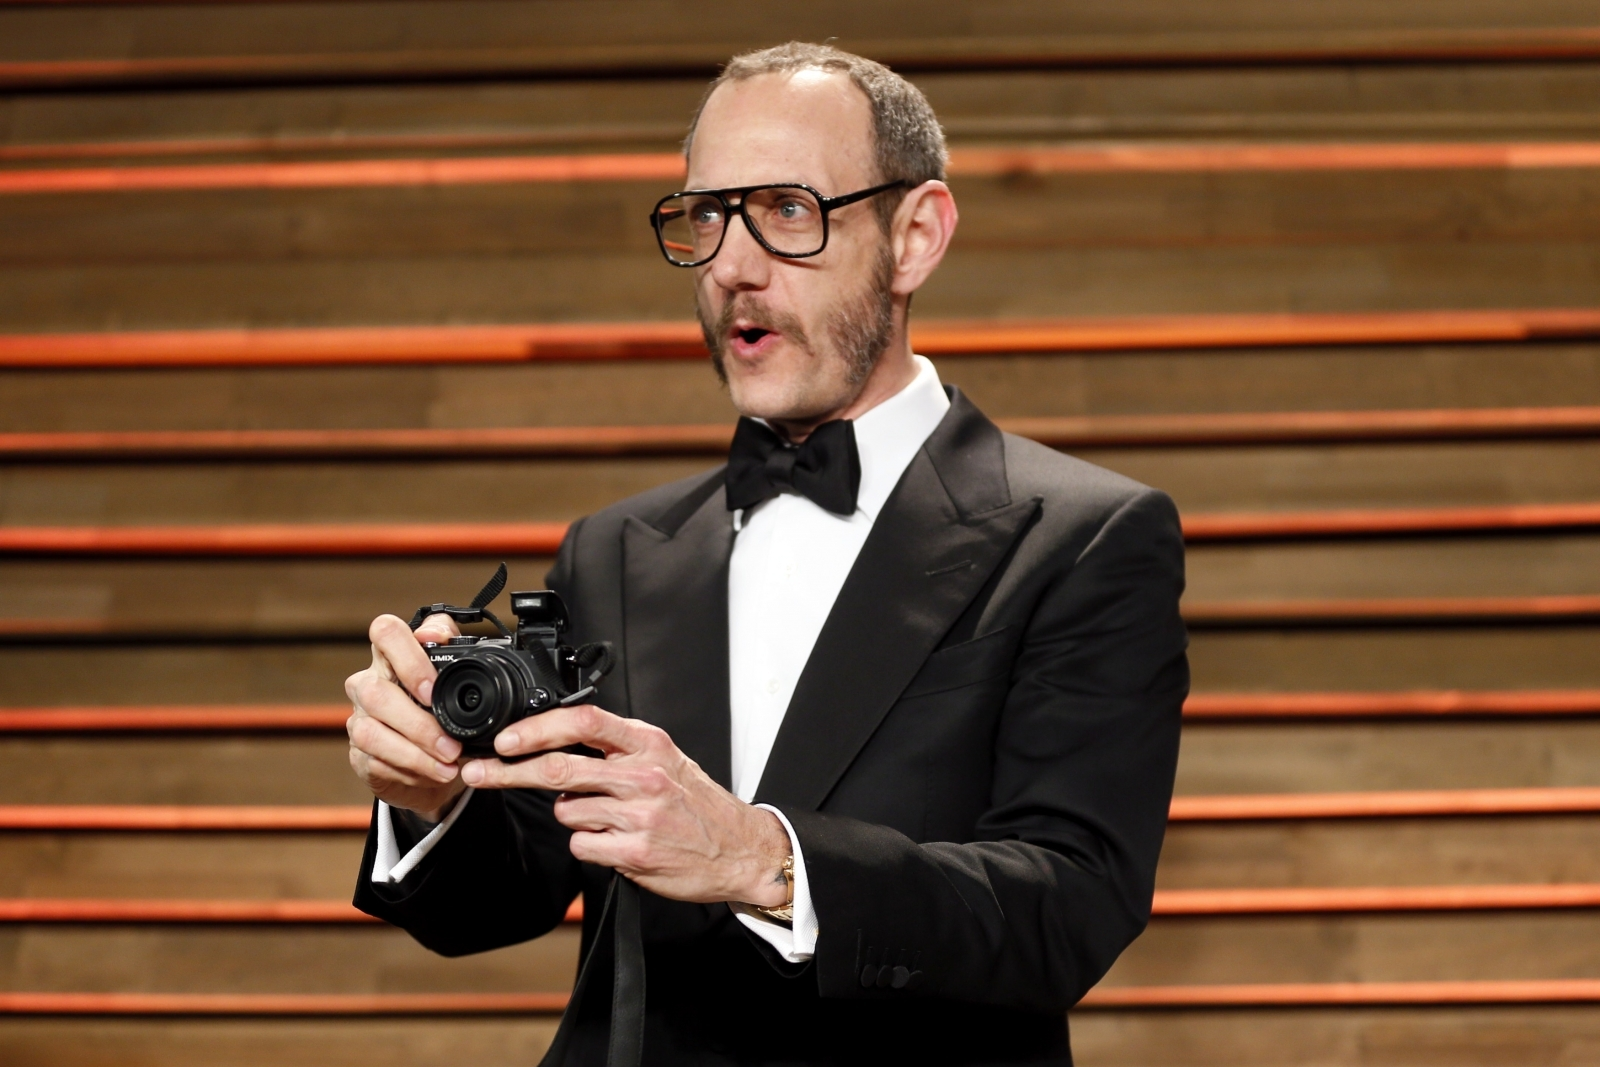 Sex scandal : Terry Richardson, the photographer of stars, sidelined by magazines - Here